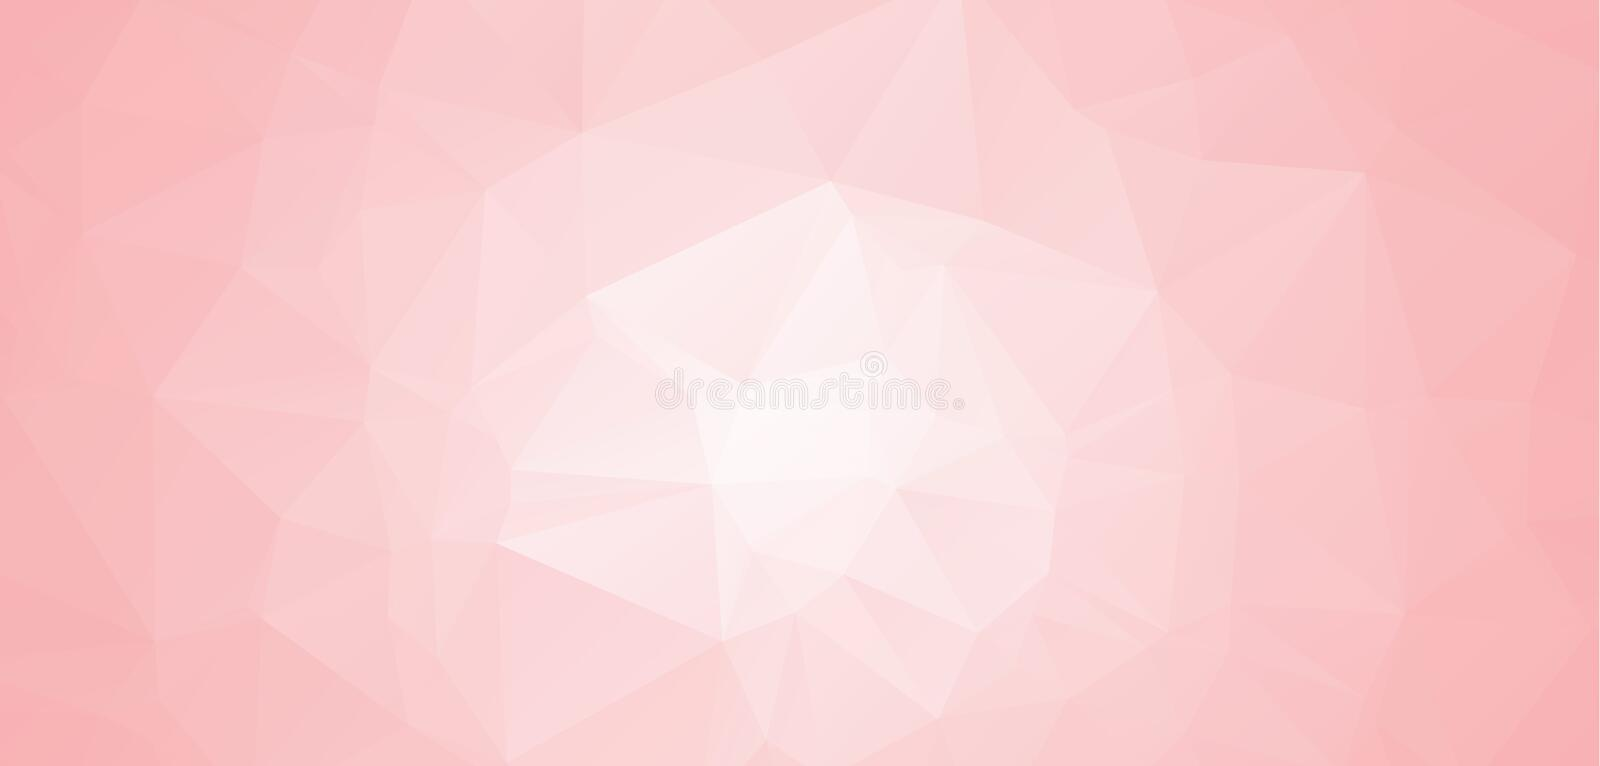 Abstract Pink and white abstract geometric backgrounds. Polygonal vector. Abstract polygonal illustration, which consist of triang stock illustration